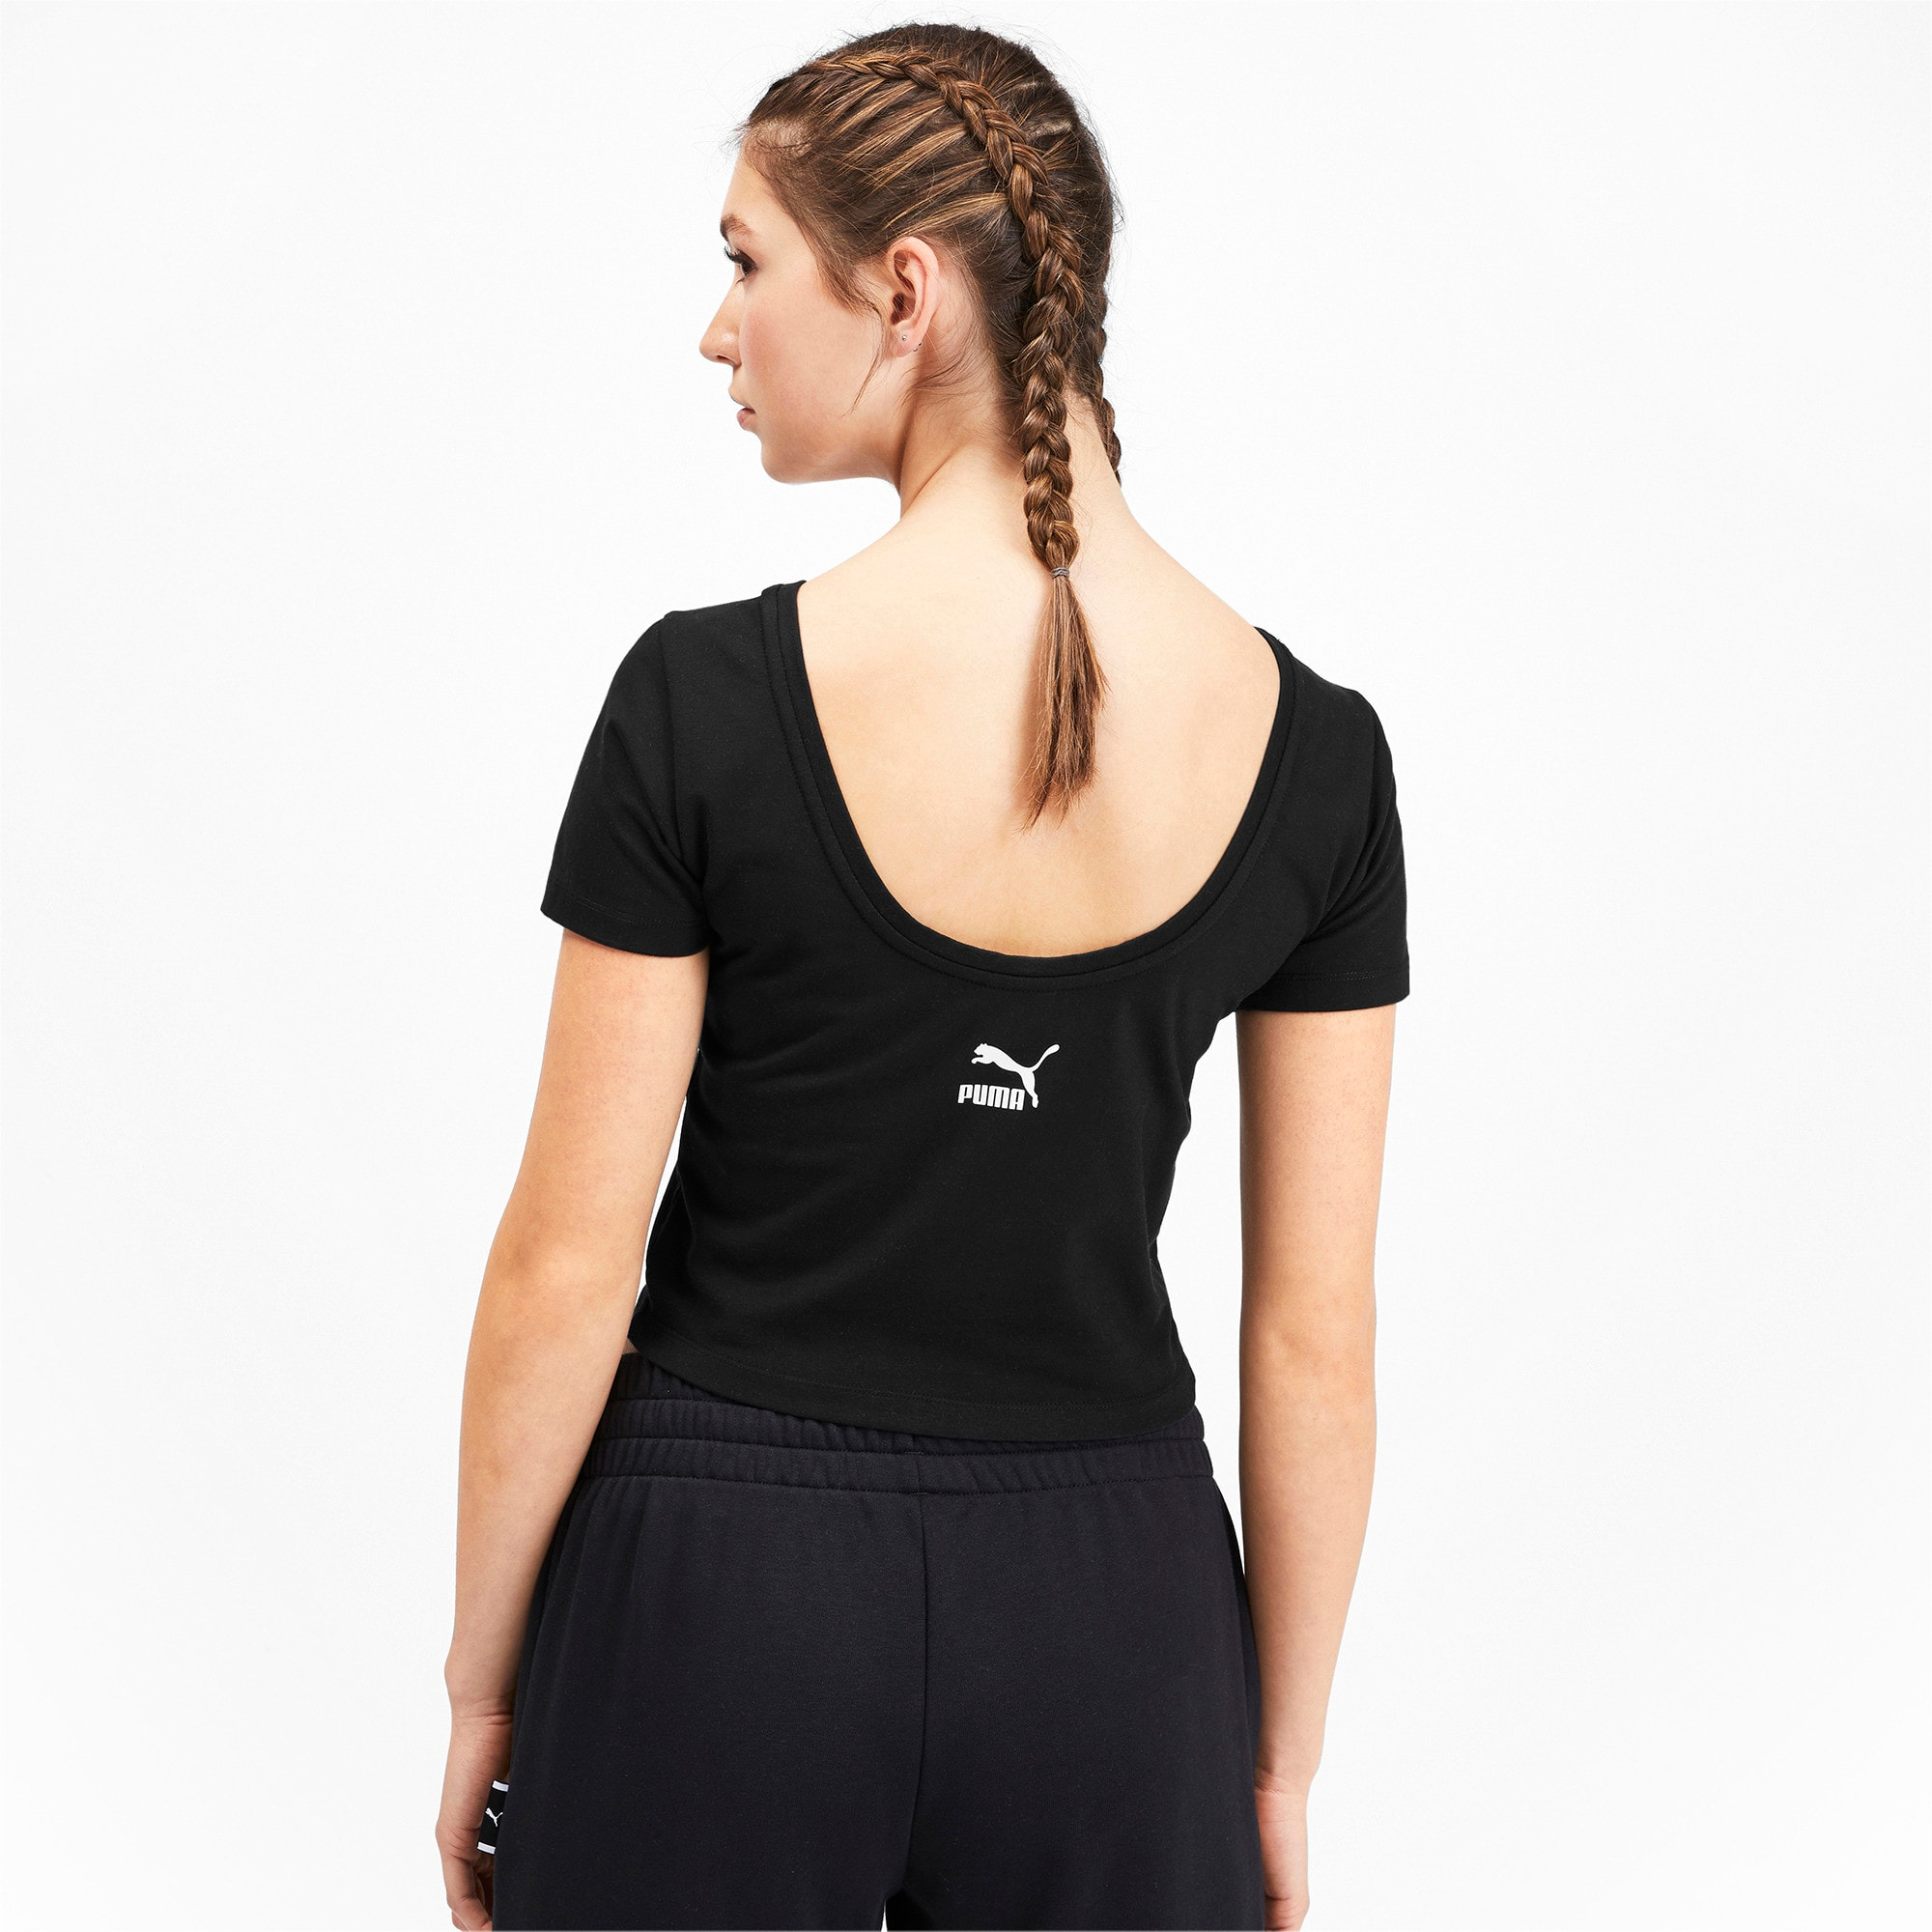 Thumbnail 2 of Claw Women's Top, Puma Black, medium